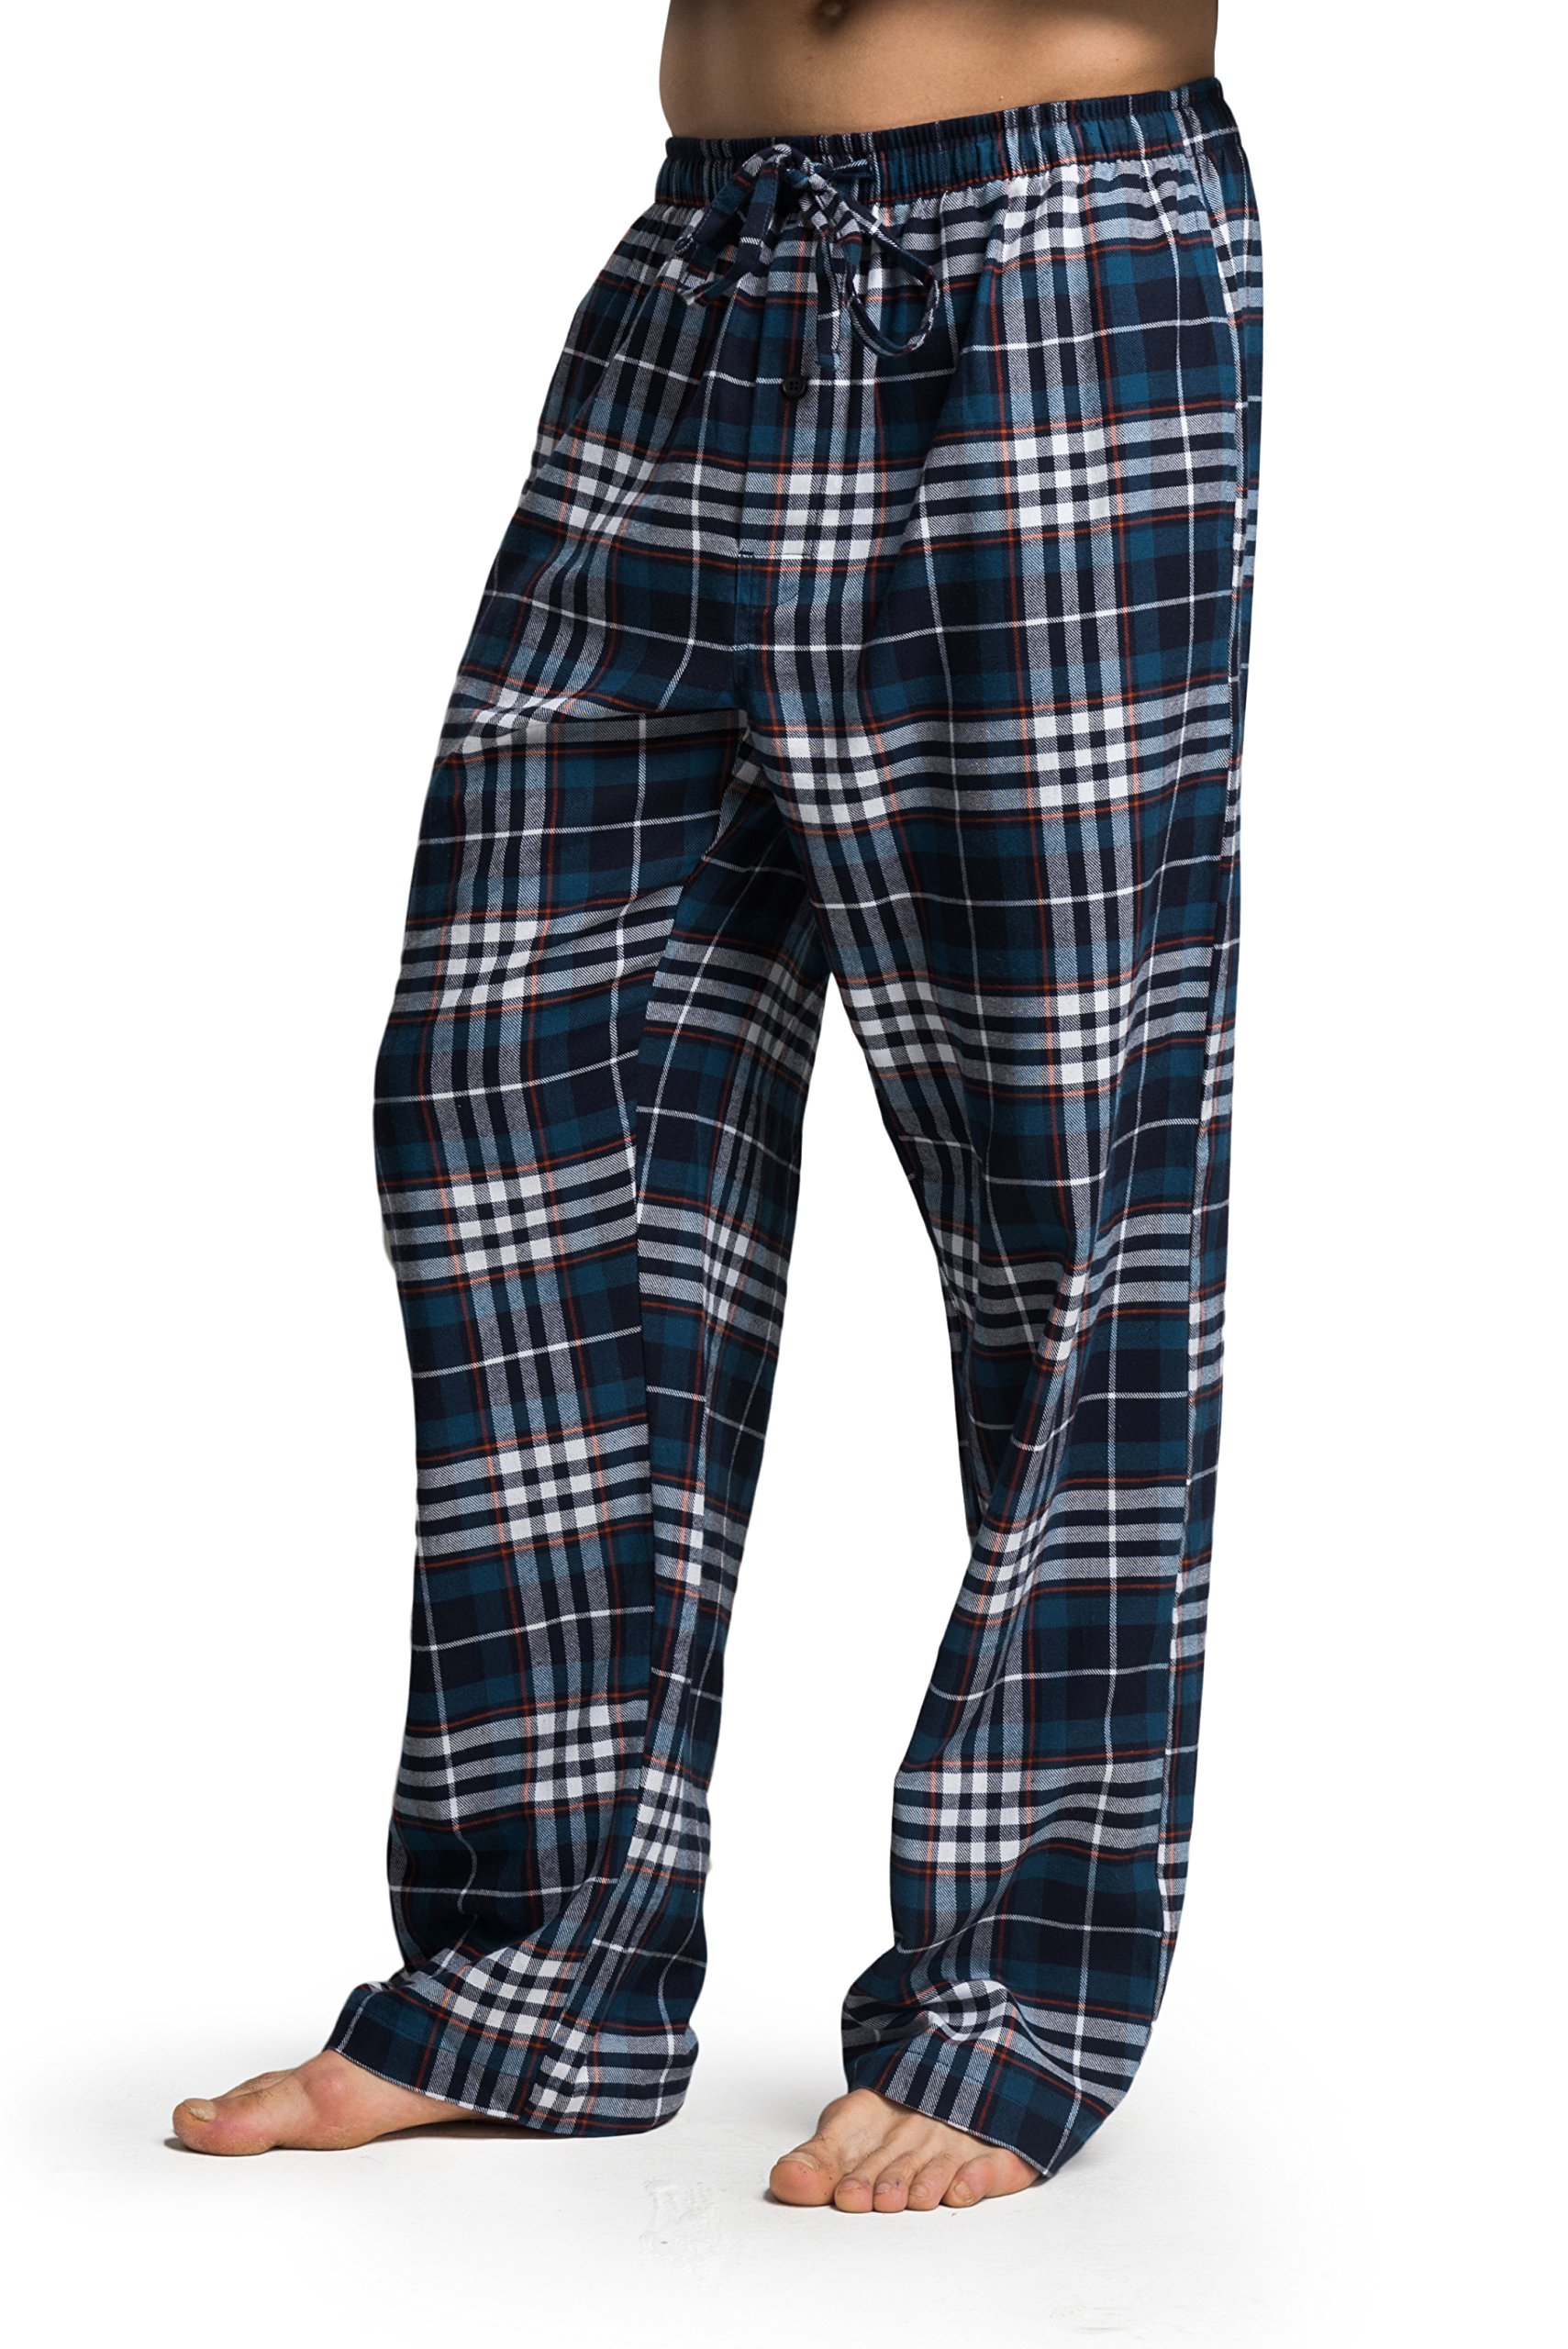 CYZ Men's 100% Cotton Super Soft Flannel Plaid Pajama Pants (L, F17014)